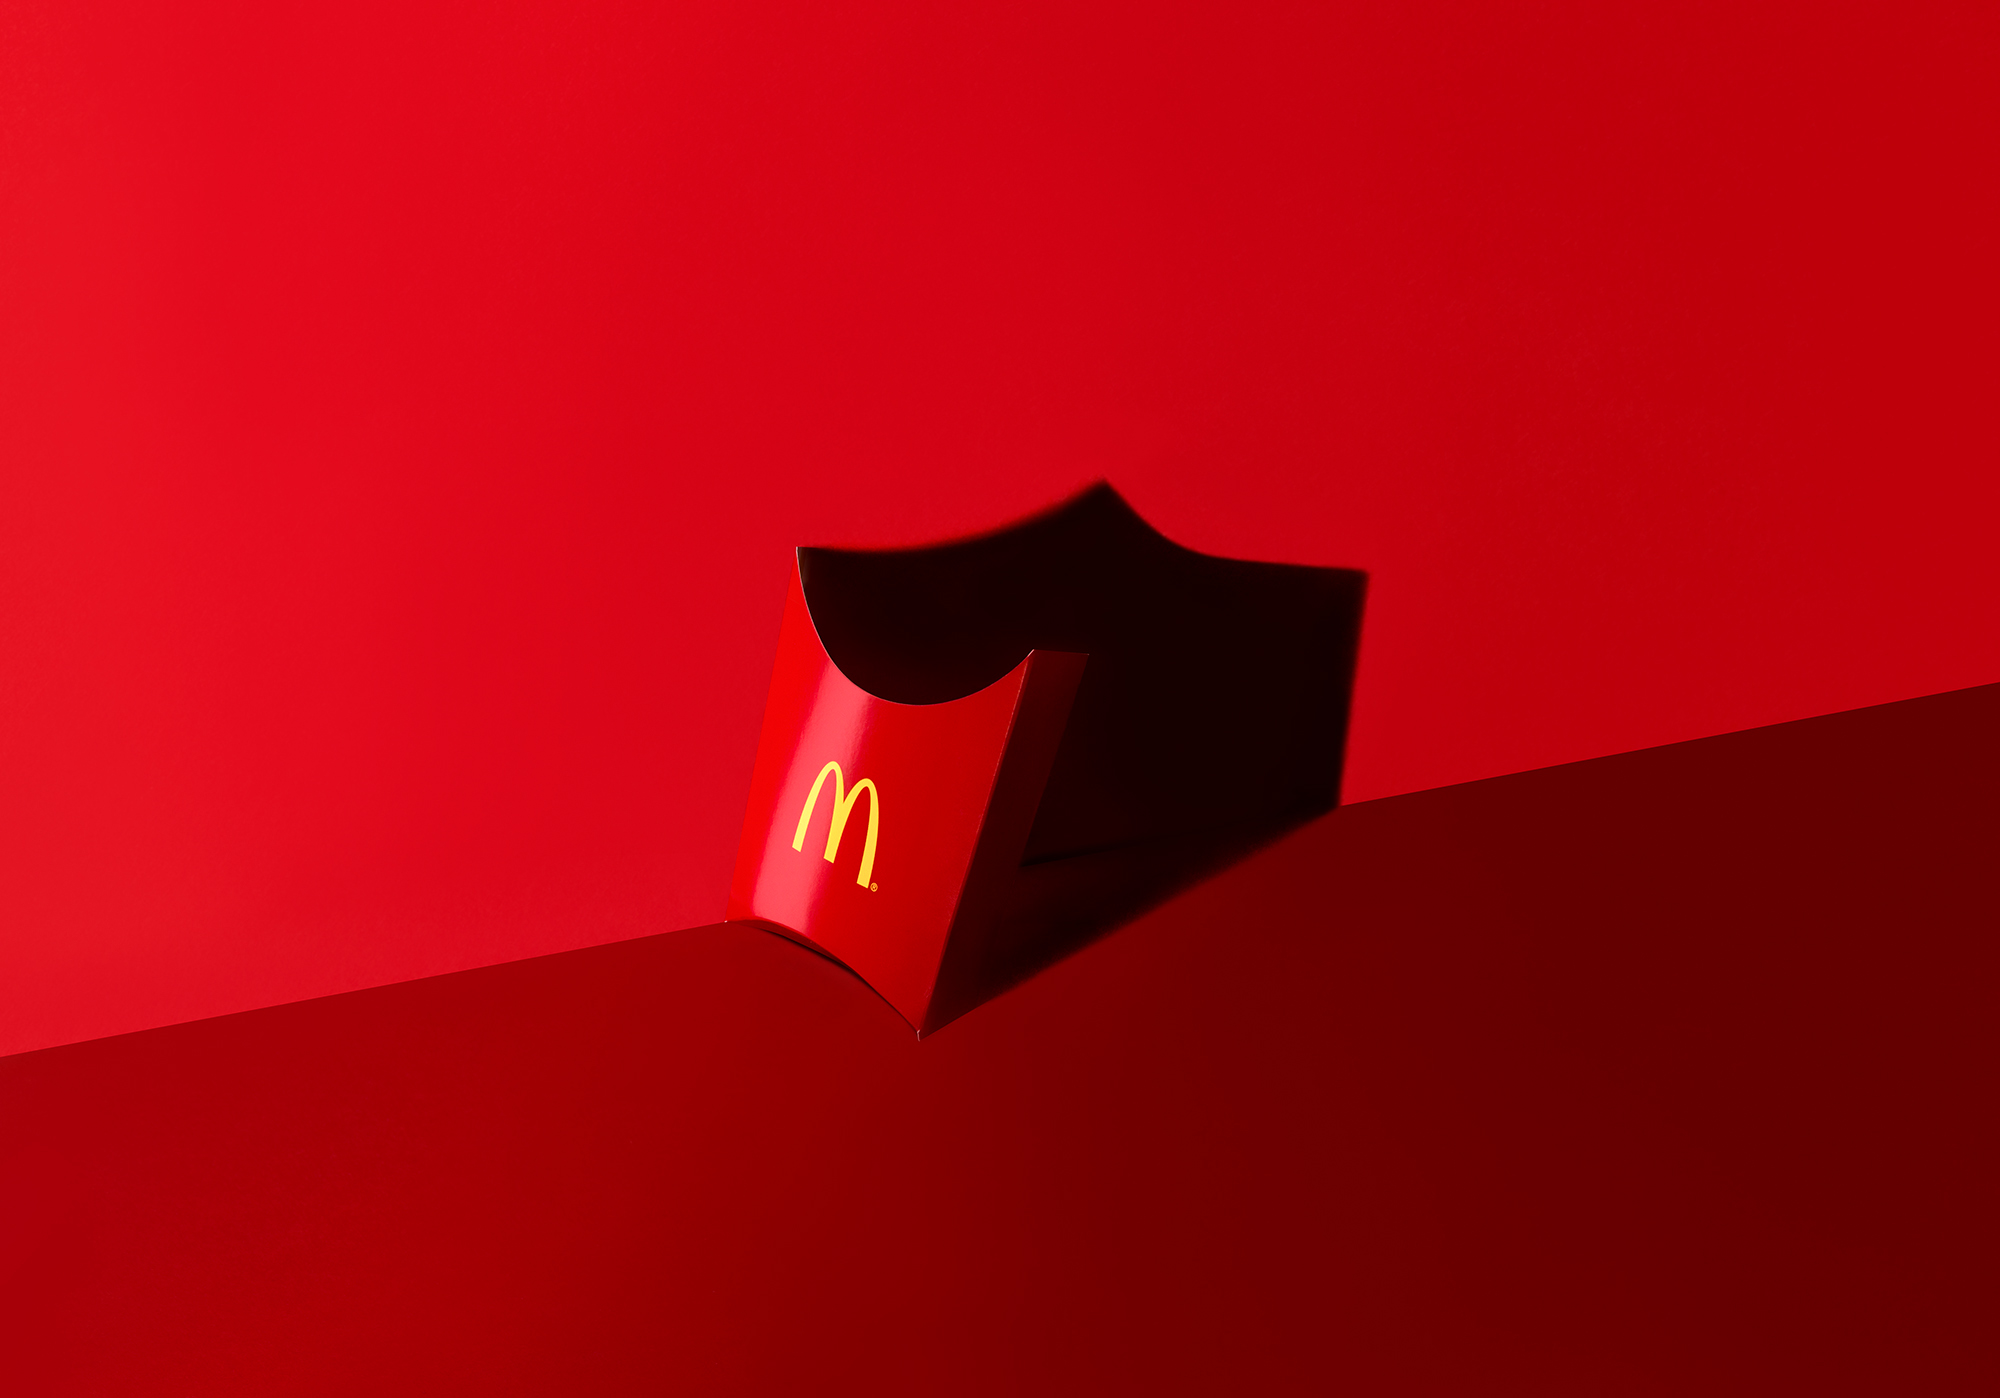 McDonalds_Inception of Desire_Claire Sunho Lee.jpg